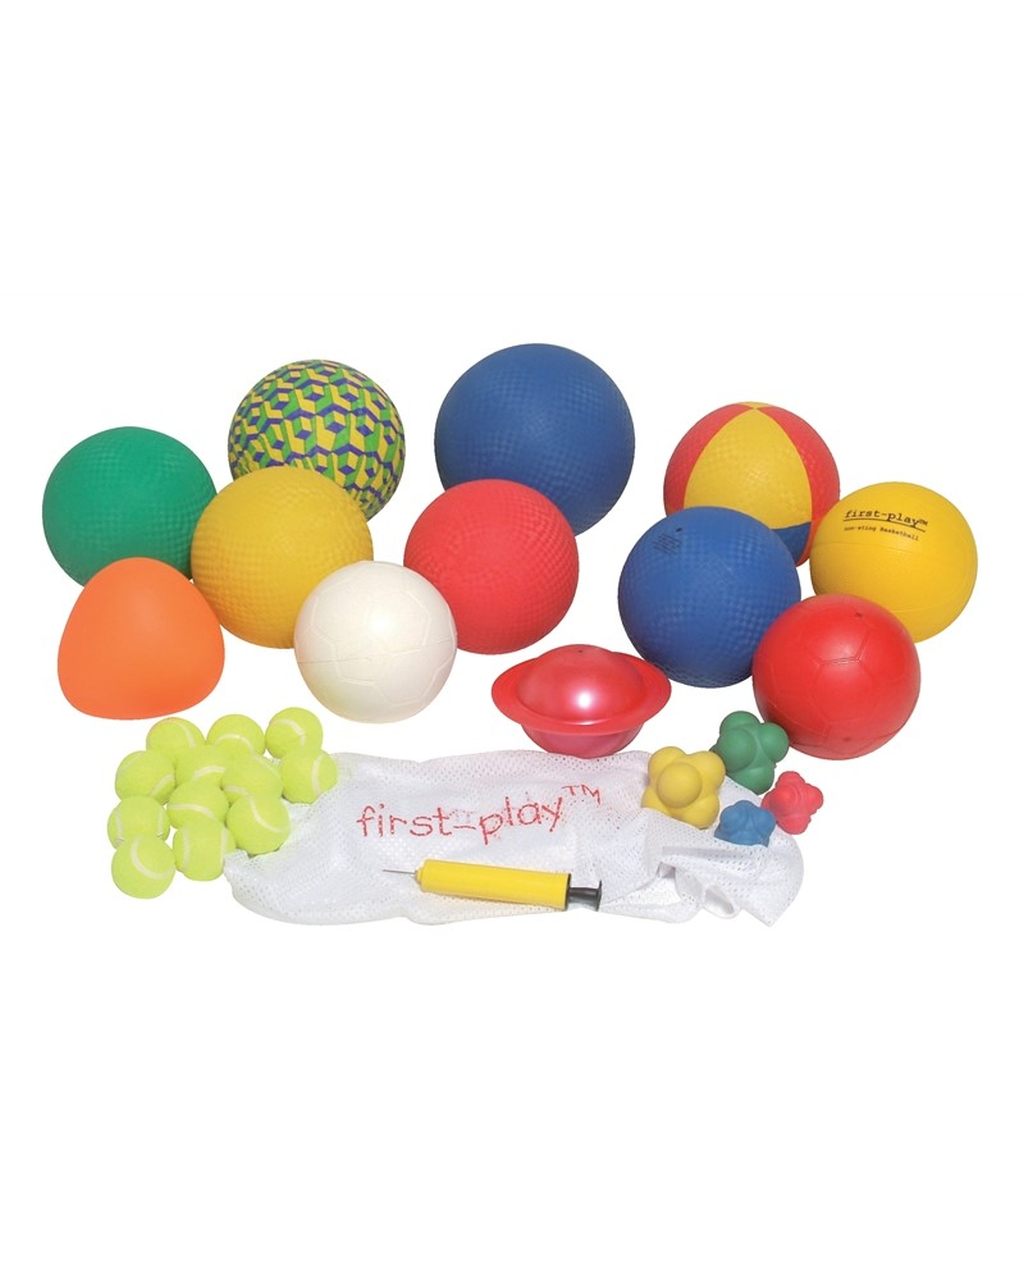 Playground Ball Pack